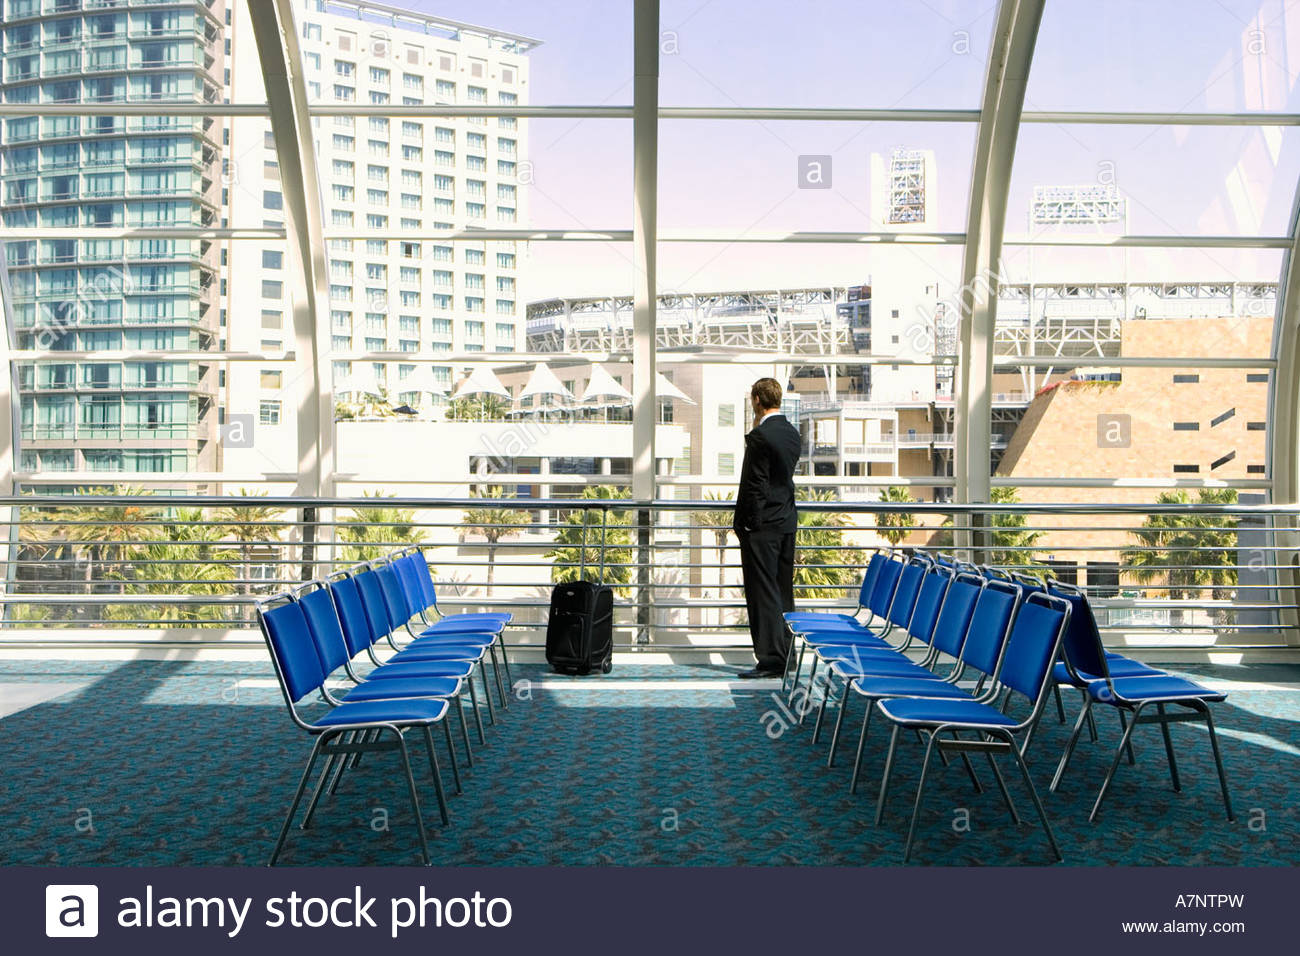 Solitary businessman waiting in airport departure lounge looking through large window at urban scene rear view - Stock Image